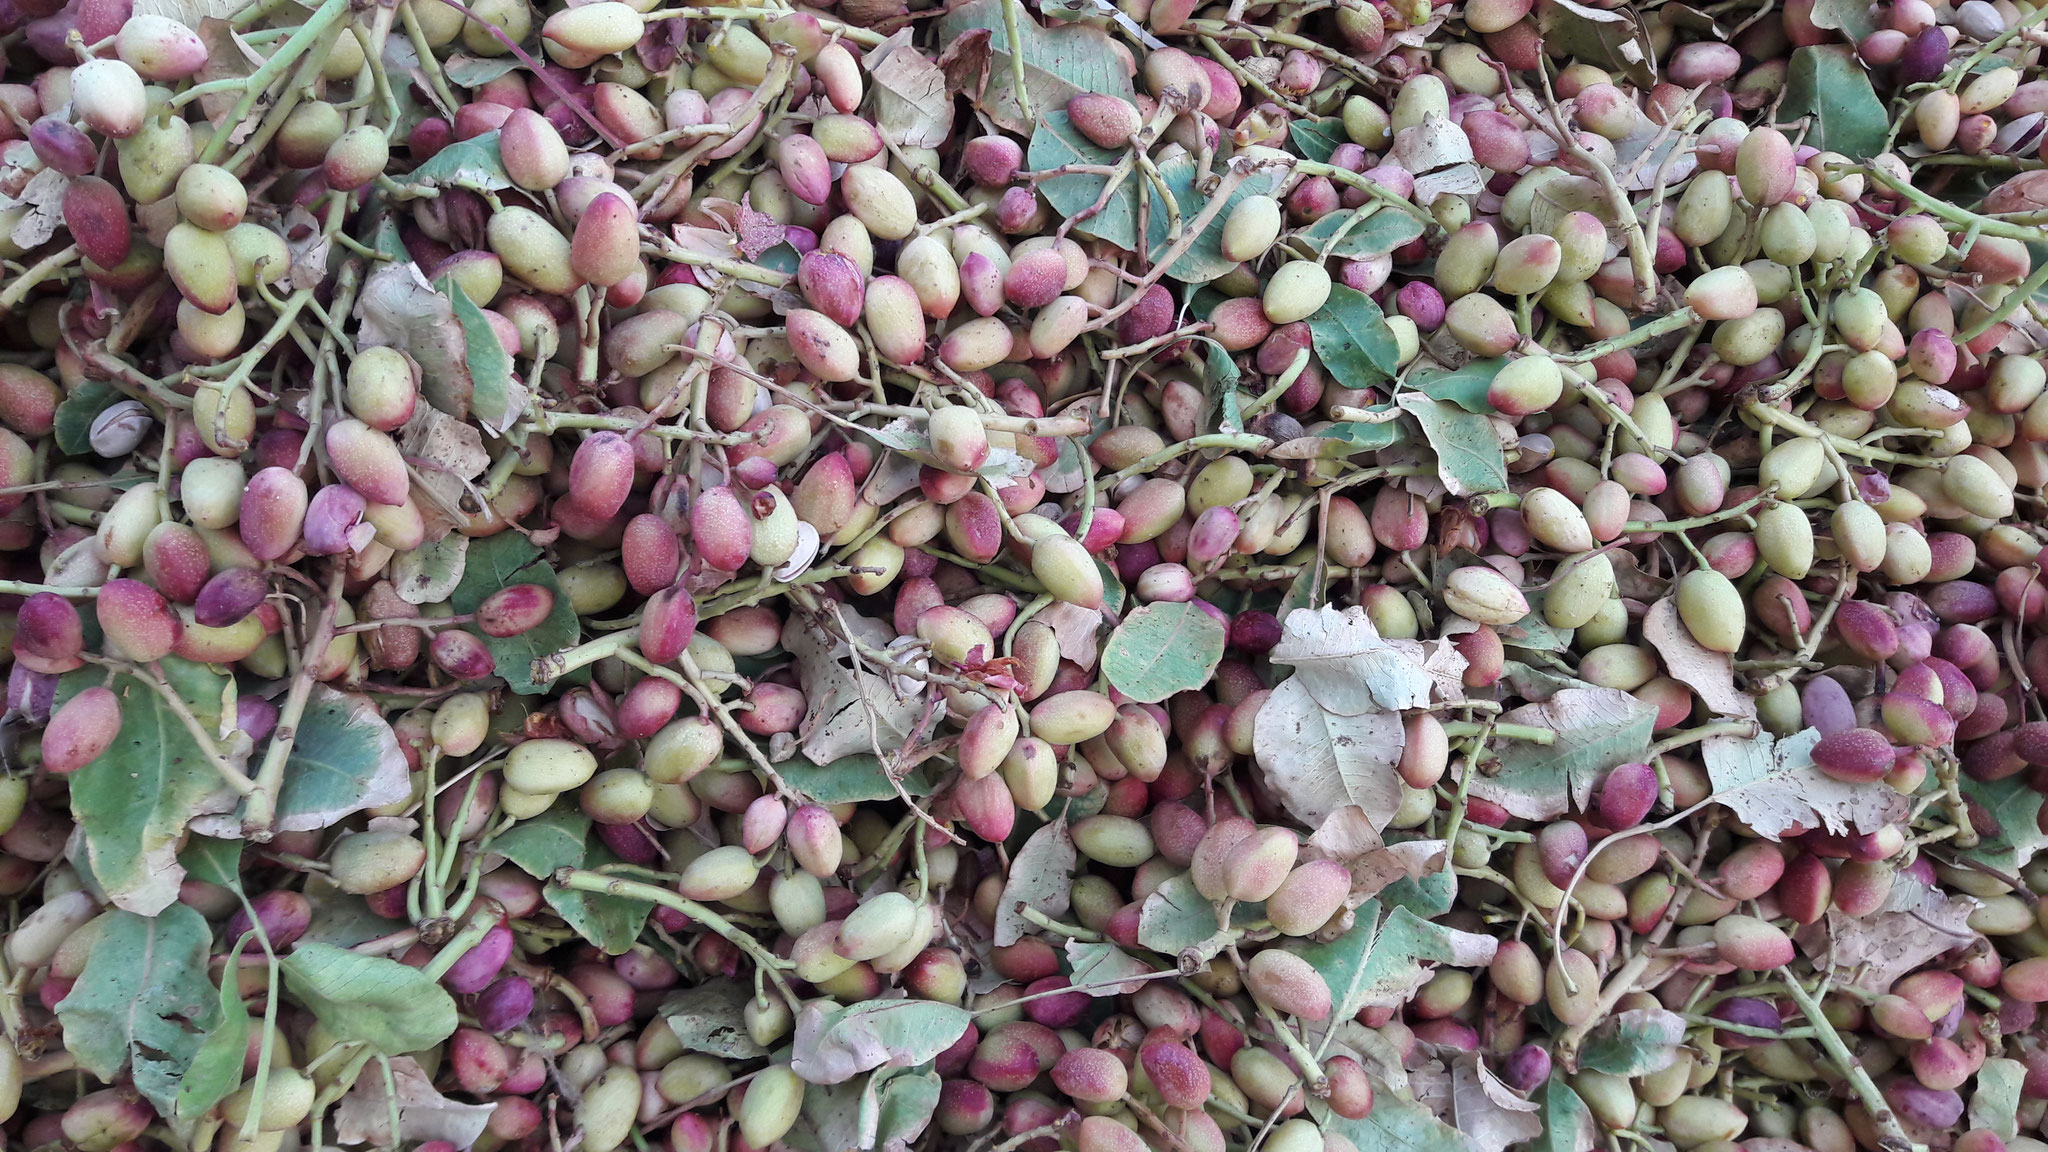 Harvested Unripe Pistachios with Branches